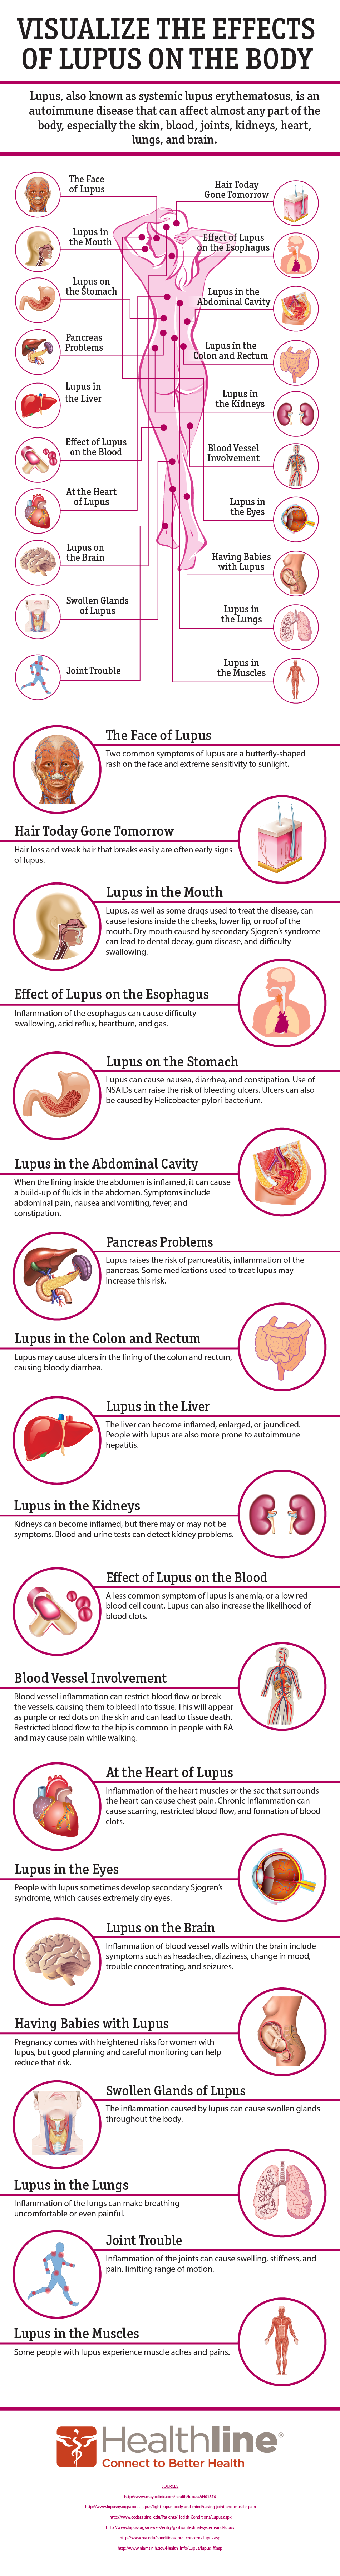 Effects of Lupus